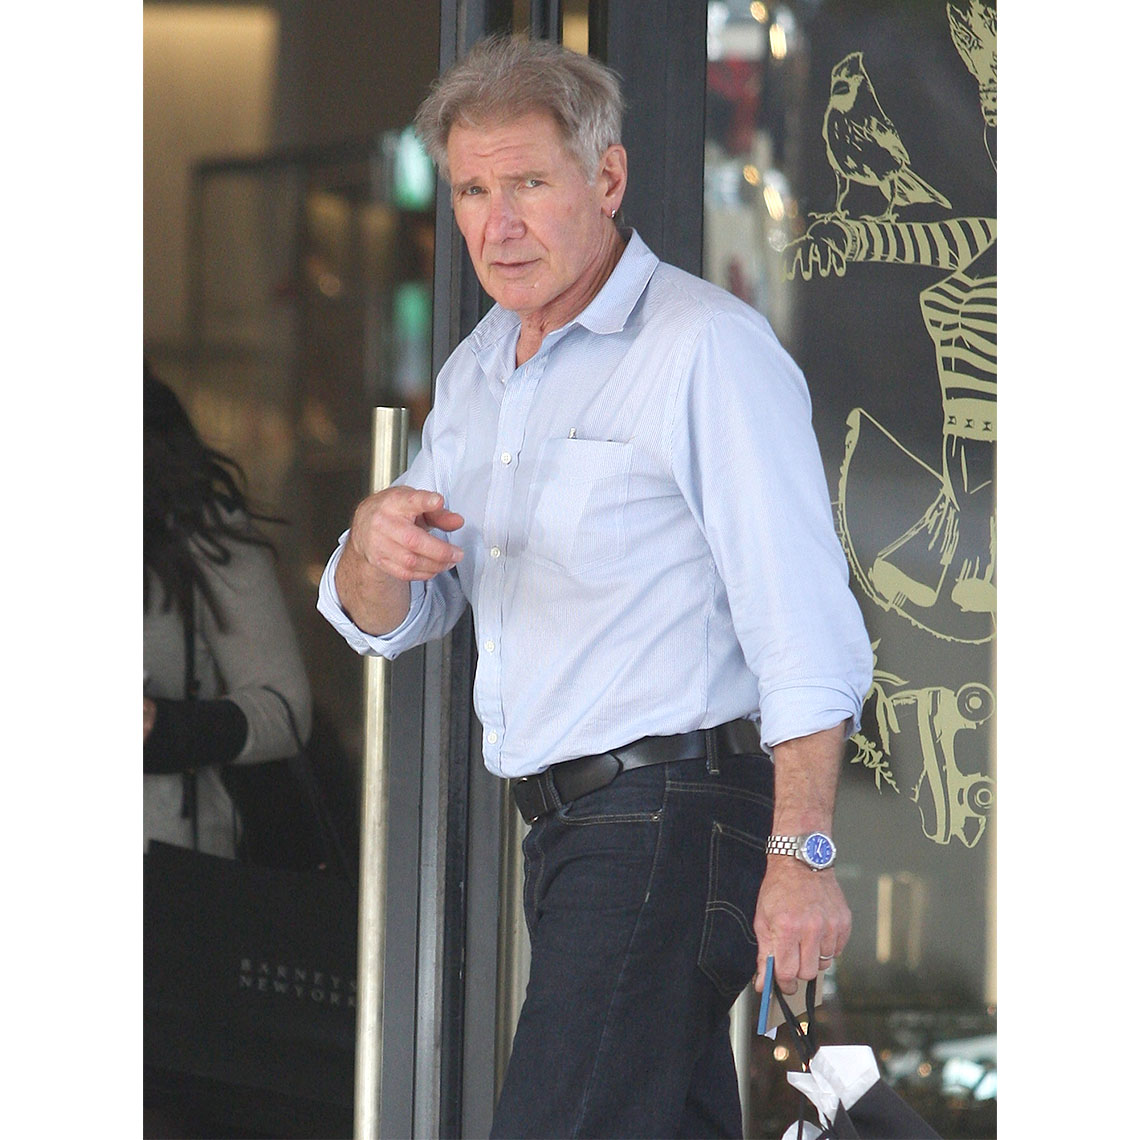 Harrison Ford sighting at Barney's New York